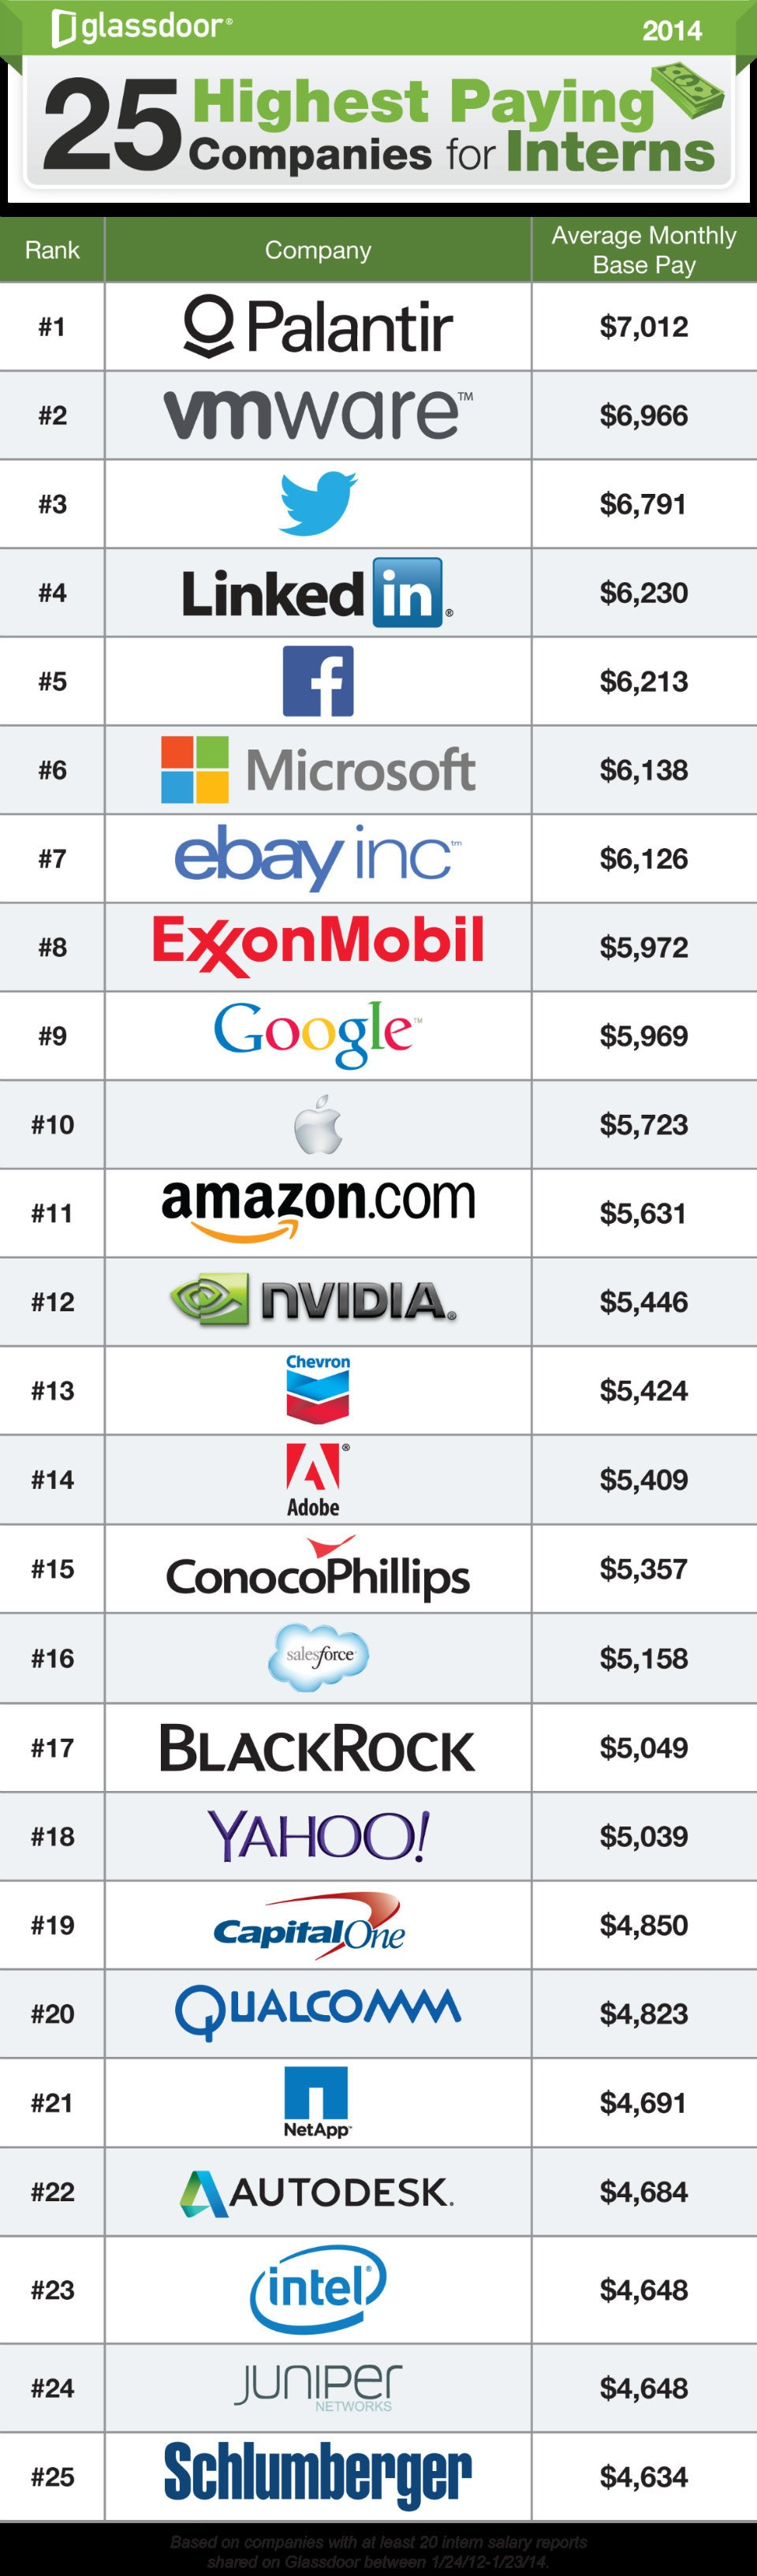 25-highest-paying-companies-for-interns